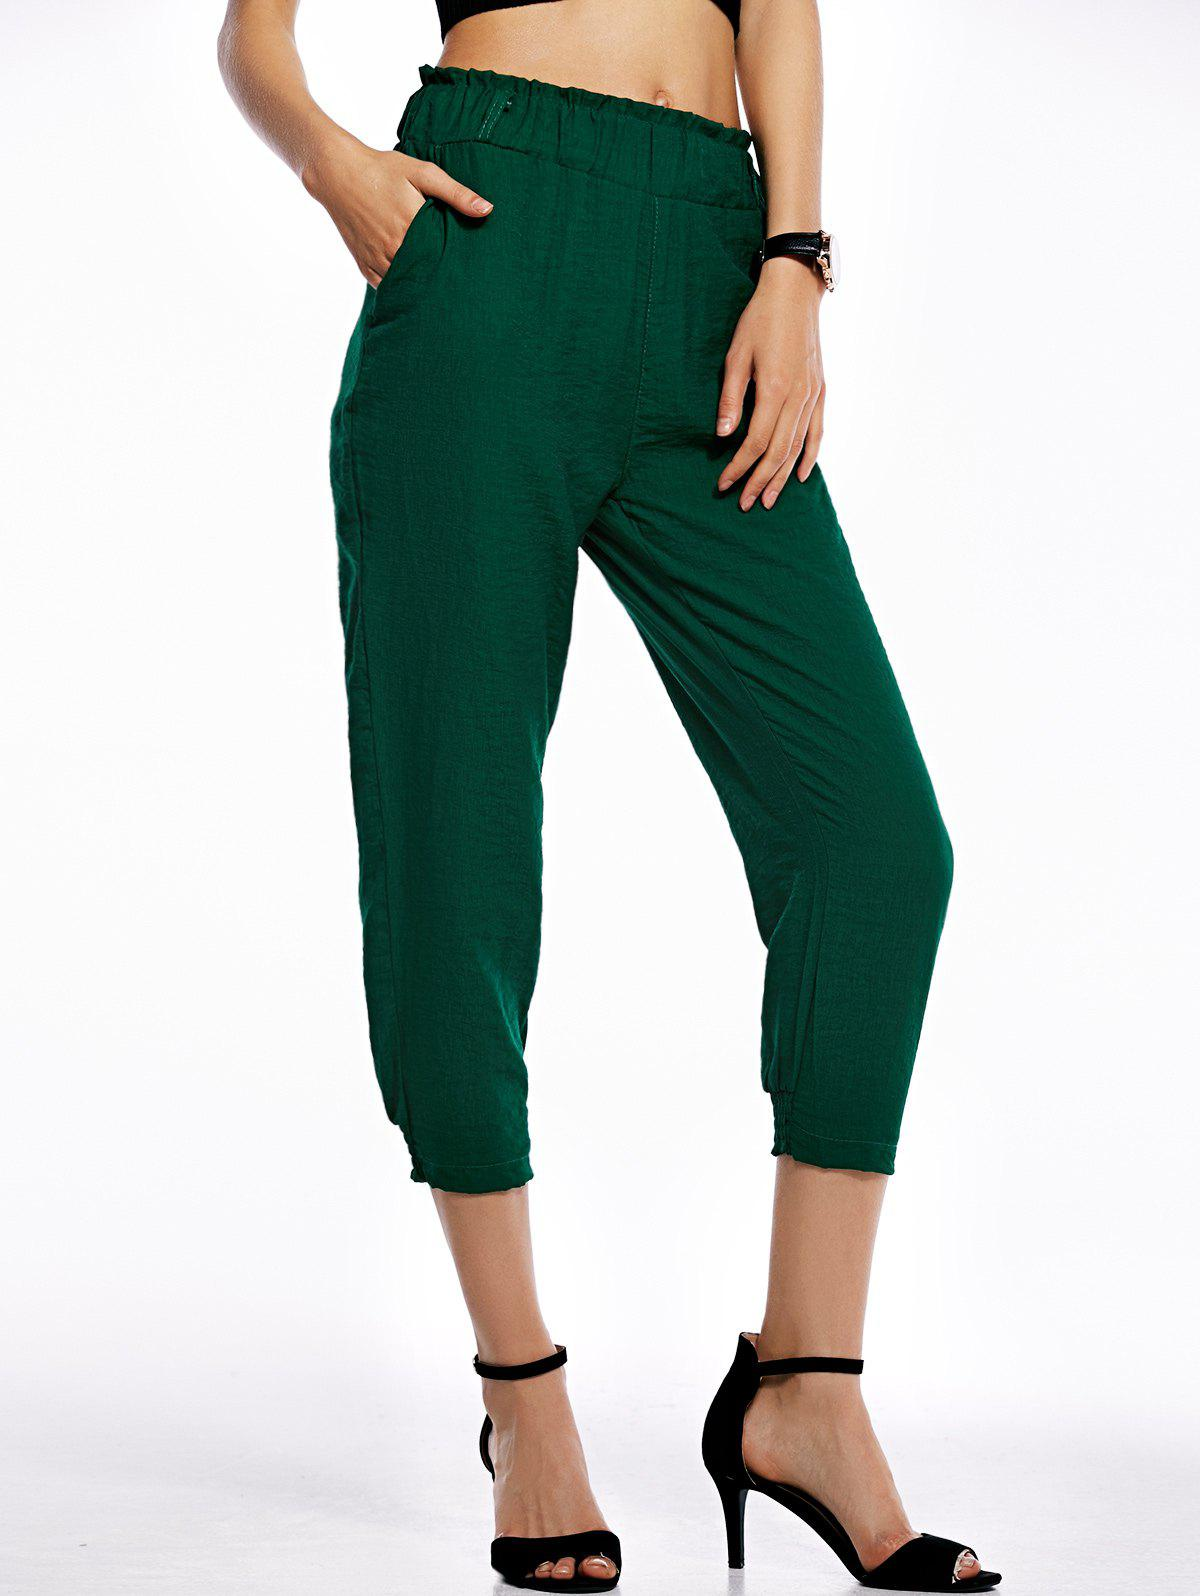 Casual Pure Color Loose Fittting Capri Pants For Women